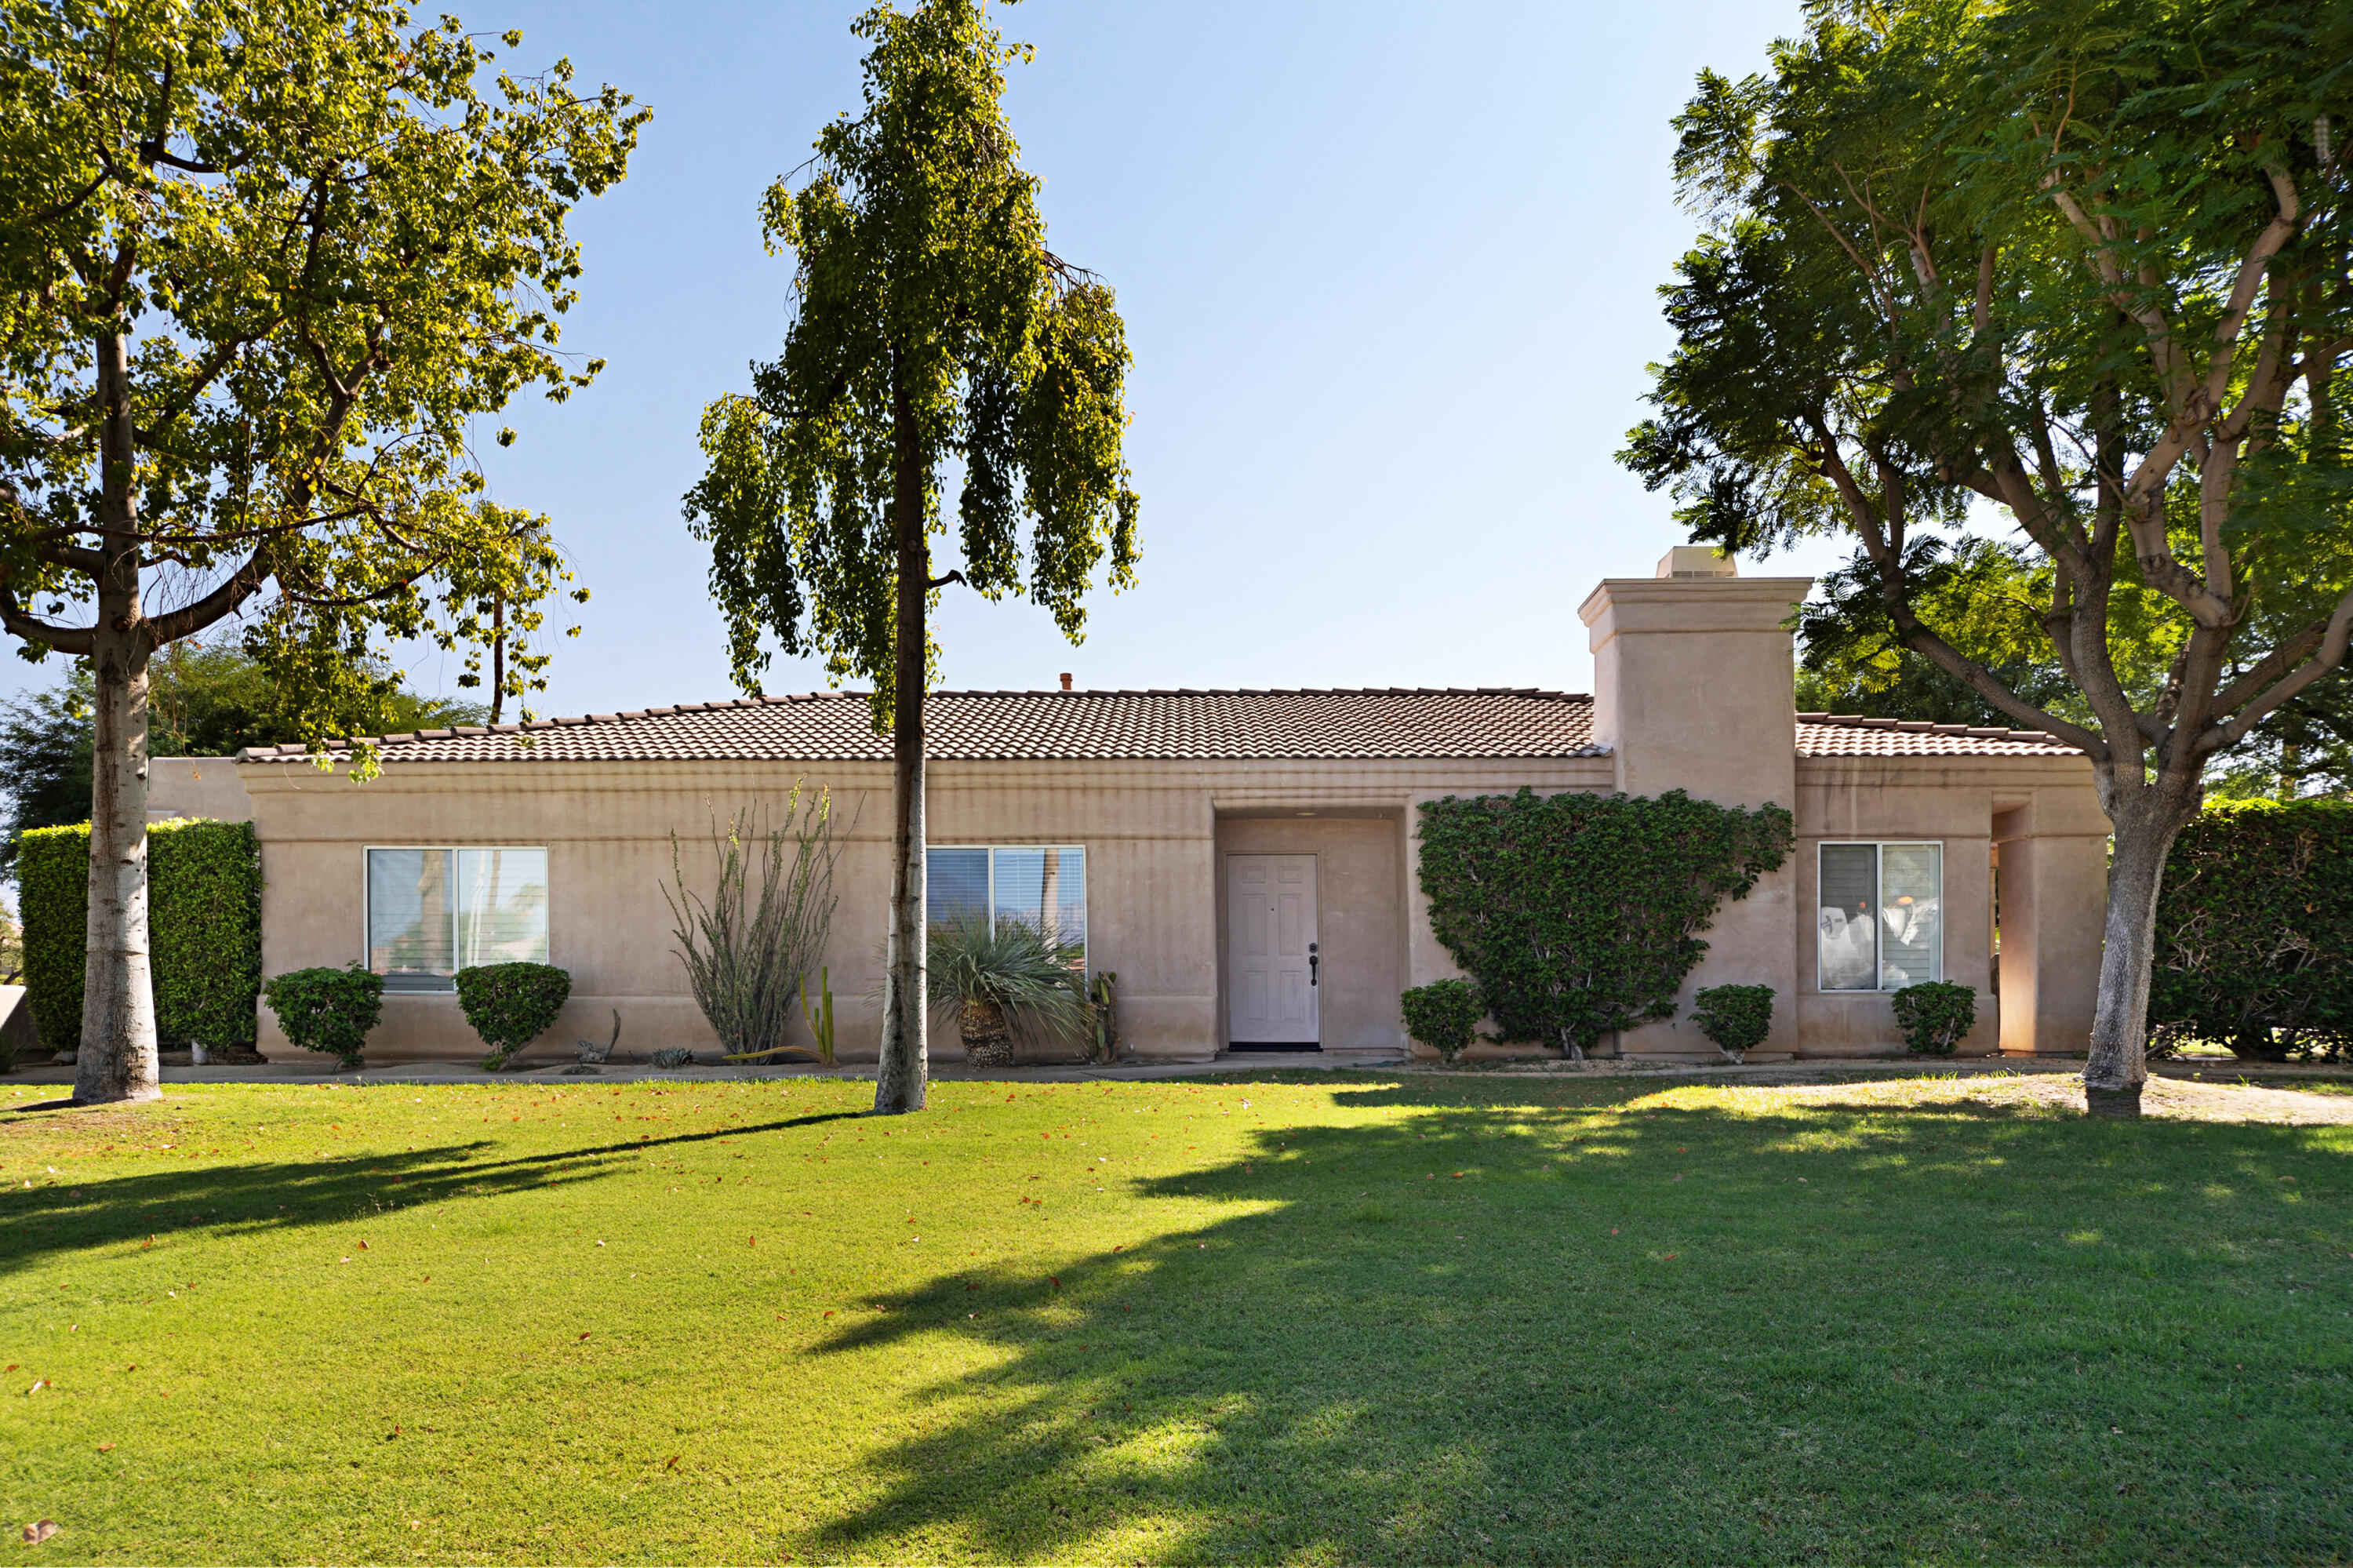 A very desirable, spacious, 3 bedroom 2 bath condo of 1775 sq.ft. conveniently located a perfect distance inside the Guard gate of Bermuda Dunes Country Club. This design offers a modern floor plan w/living room, fireplace, family room, & kitchen all open together. All three areas look out on large south facing patio through a wall of windows plus slider. There's a good sized office, den/bedroom on your left off the entry plus another spacious additional bedroom across the hall with a full bath nearby & with new granite counter & sinks . The master suite has good separation from the guest bedrooms and is quite large with a area for exercise equipment or study area. Master bath has been remodeled and is very attractive. This condo is one of ten within ''The Greens at Bermuda Dunes'' which consists of 10 condos in a near circle with a community pool/spa in the middle. This condo is now vacant, clean and ready for move-in. Bermuda Dunes C.C, has a long history and was one of the courses used in the world famous Bob Hope Desert Classic and this championship PGA course meanders through the development with houses well above the million dollar level and everything in between.  There is popular large private Bermuda Dunes Country Club clubhouse for its members and also the convenient private Bermuda Dunes airport is just northeast of Bermuda Dunes Country Club. Its just a 5 minute drive to connect to Interstate 10 from Jefferson. This property should move fast so make offer now!